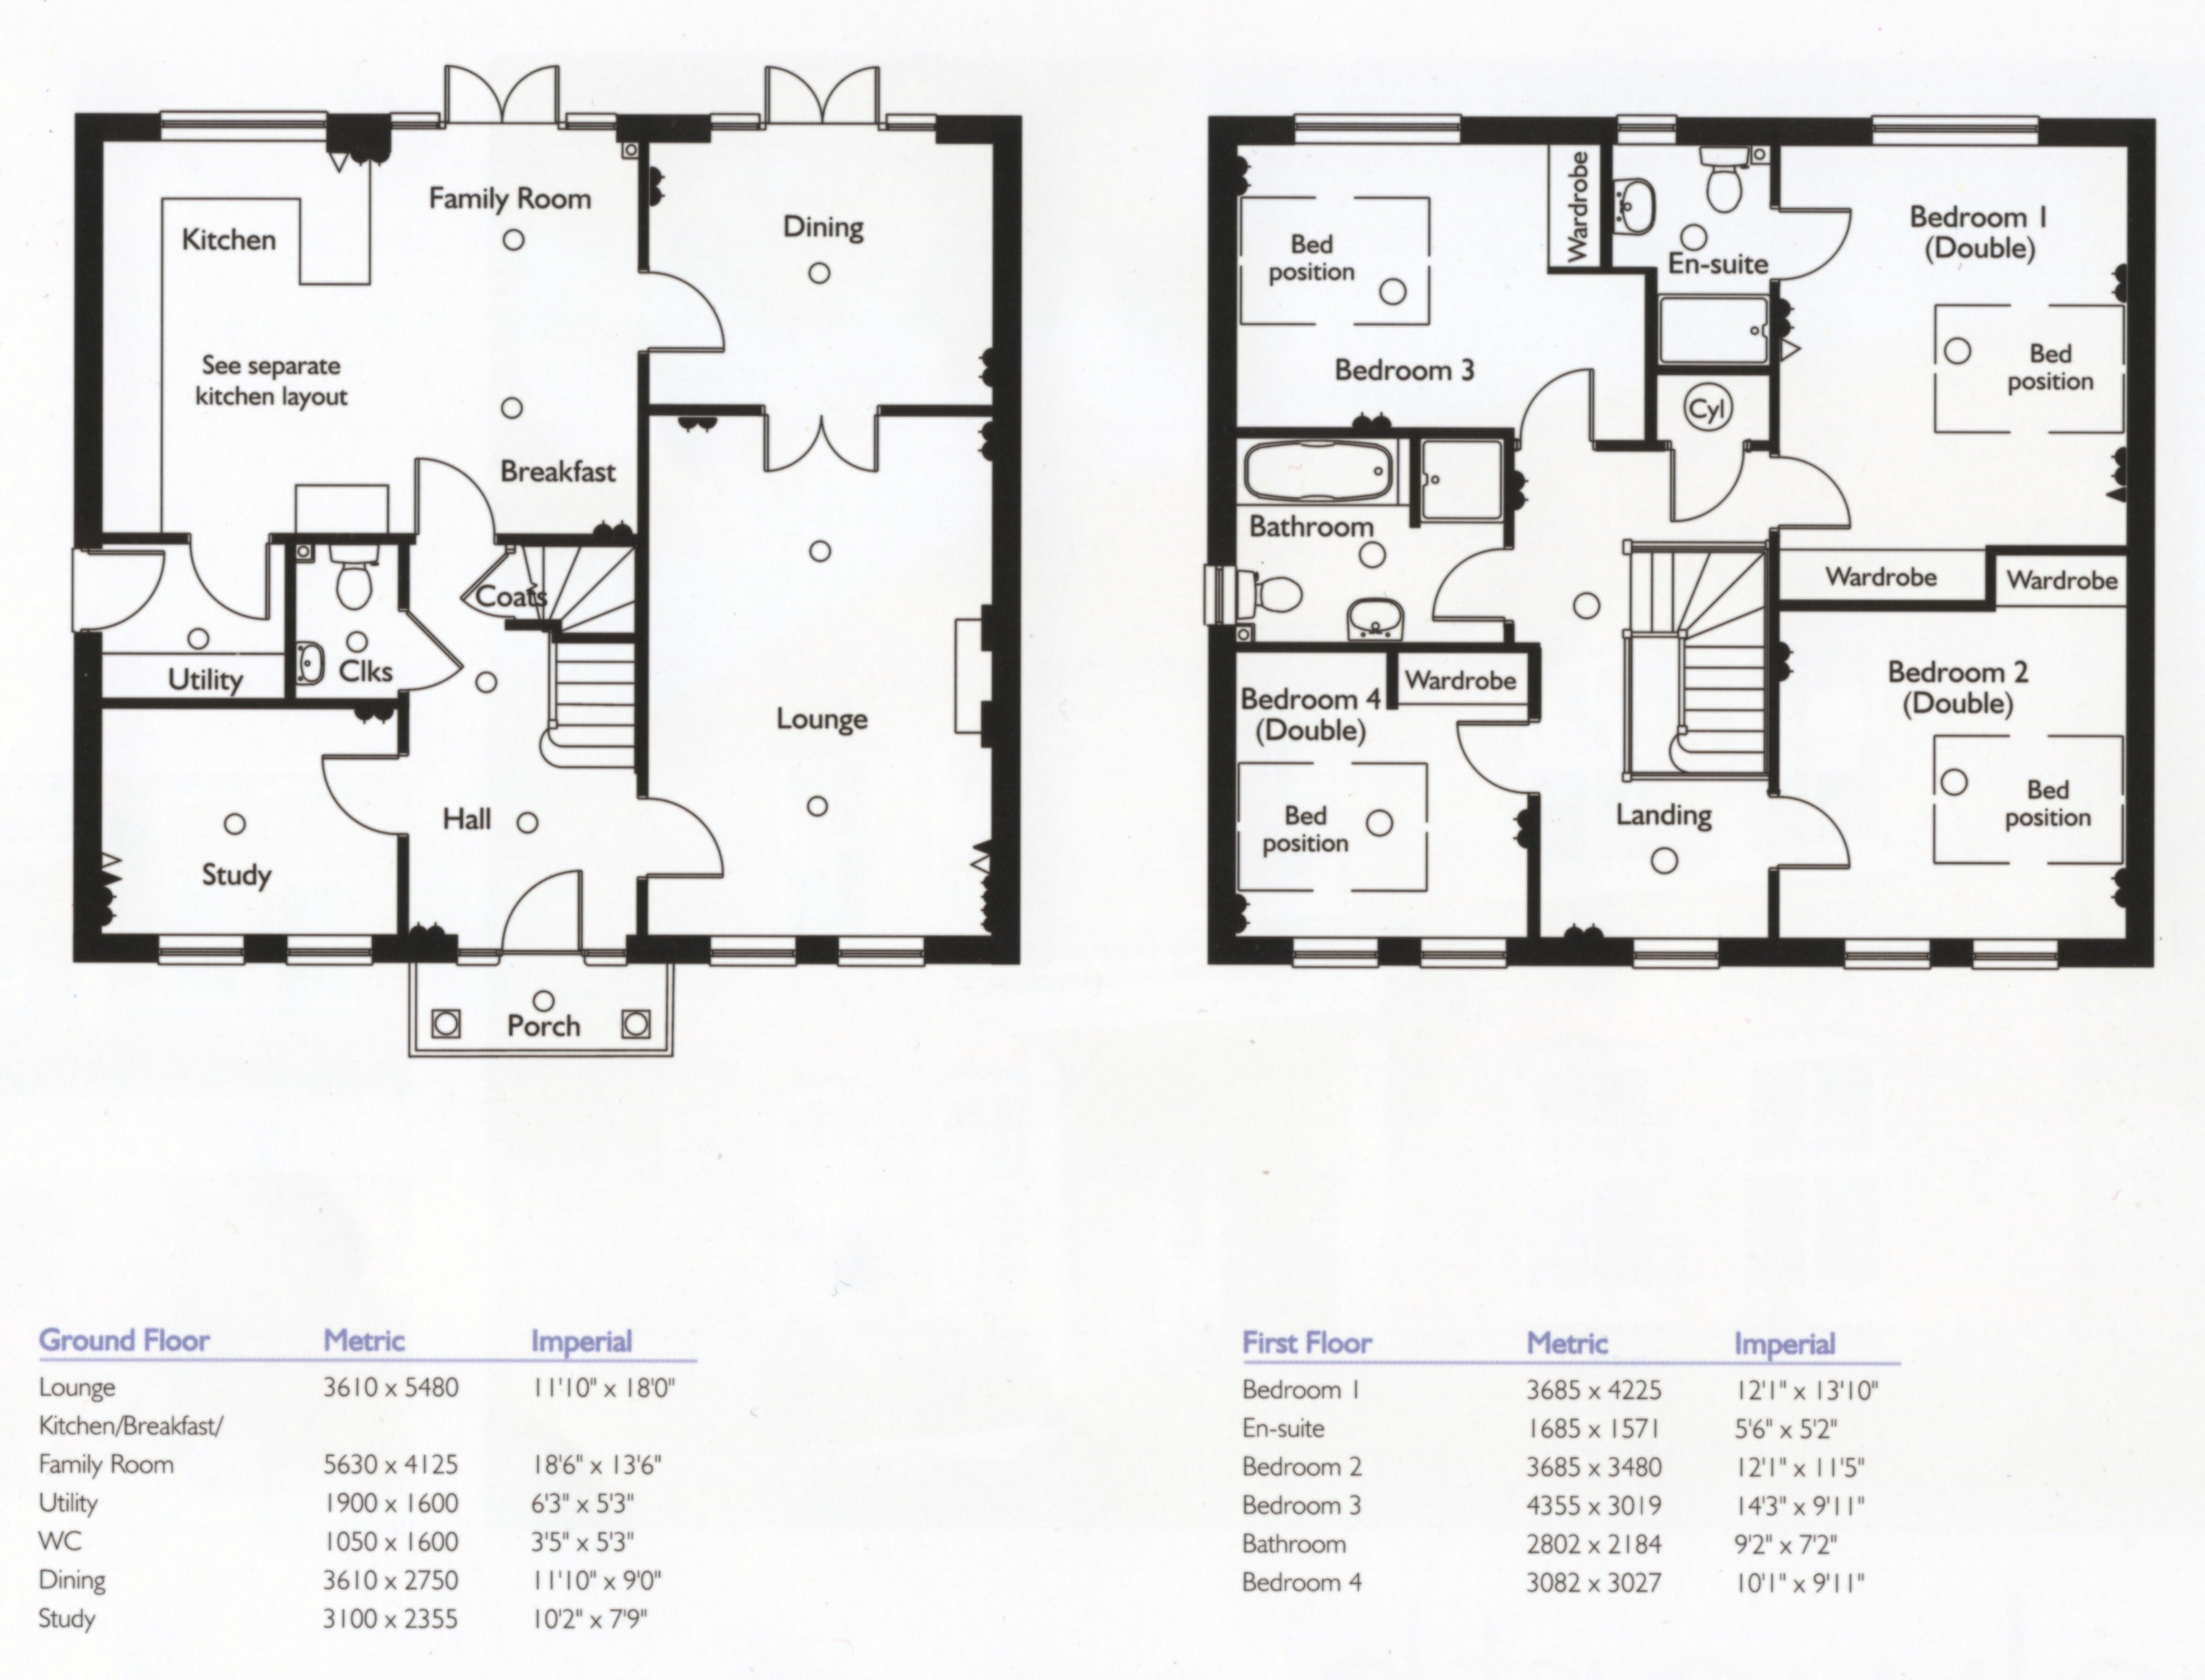 407786941235520984 on room addition floor plans ideas